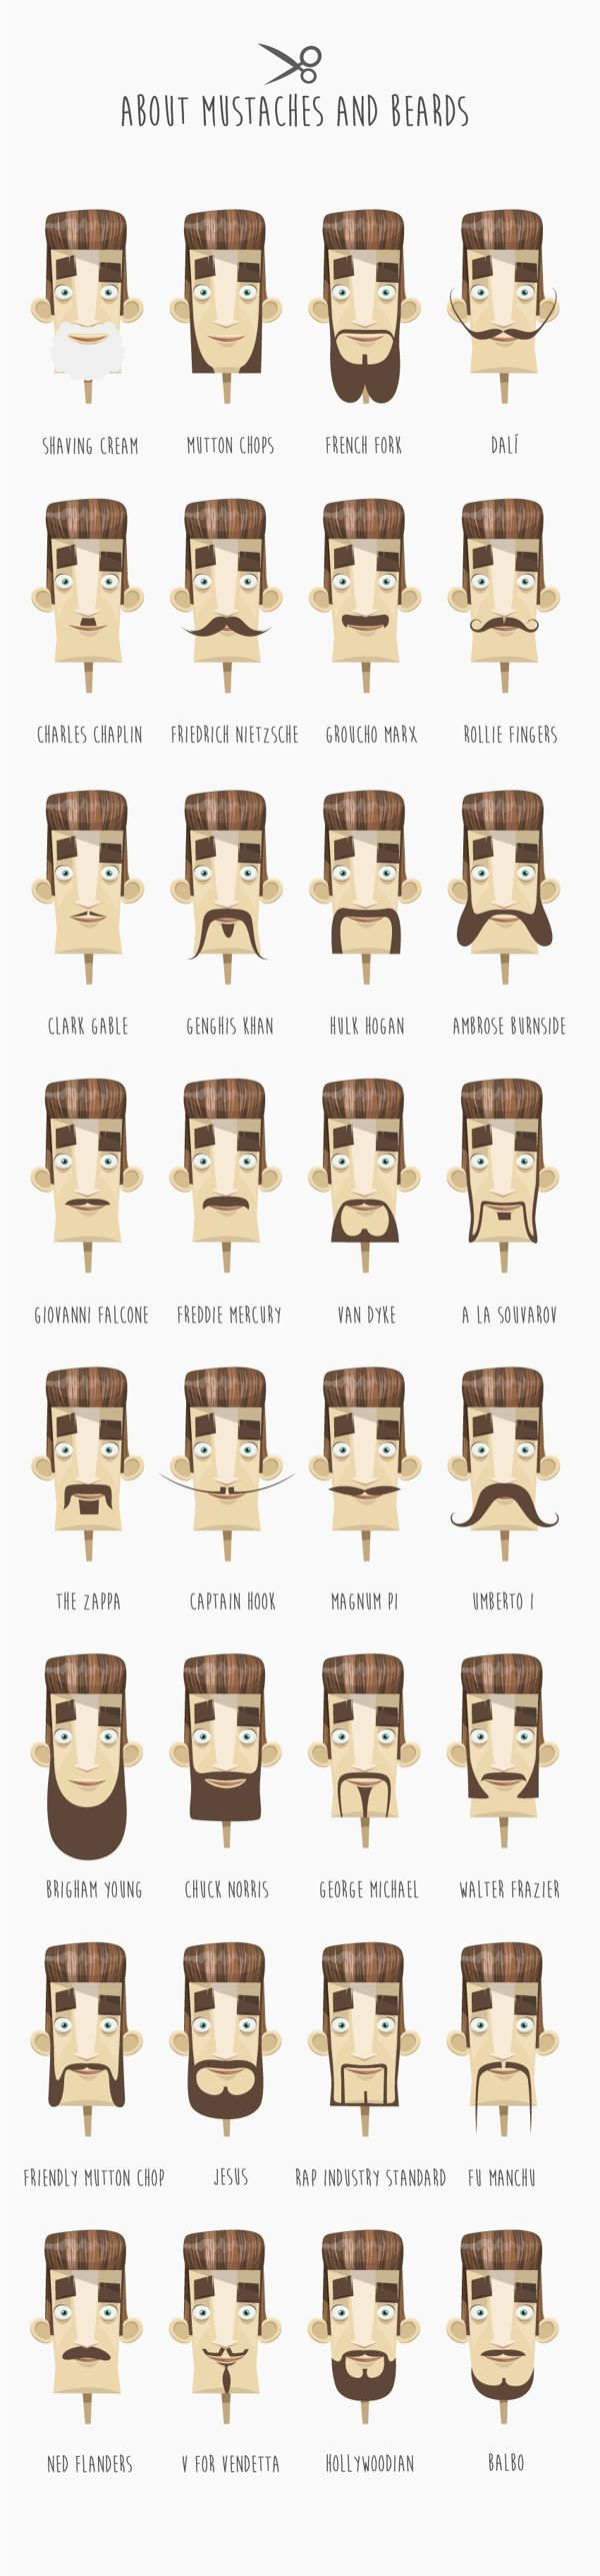 The Hairstylist by Federico Bonifacini, via Behance ★ Find more at http://www.pinterest.com/competing/